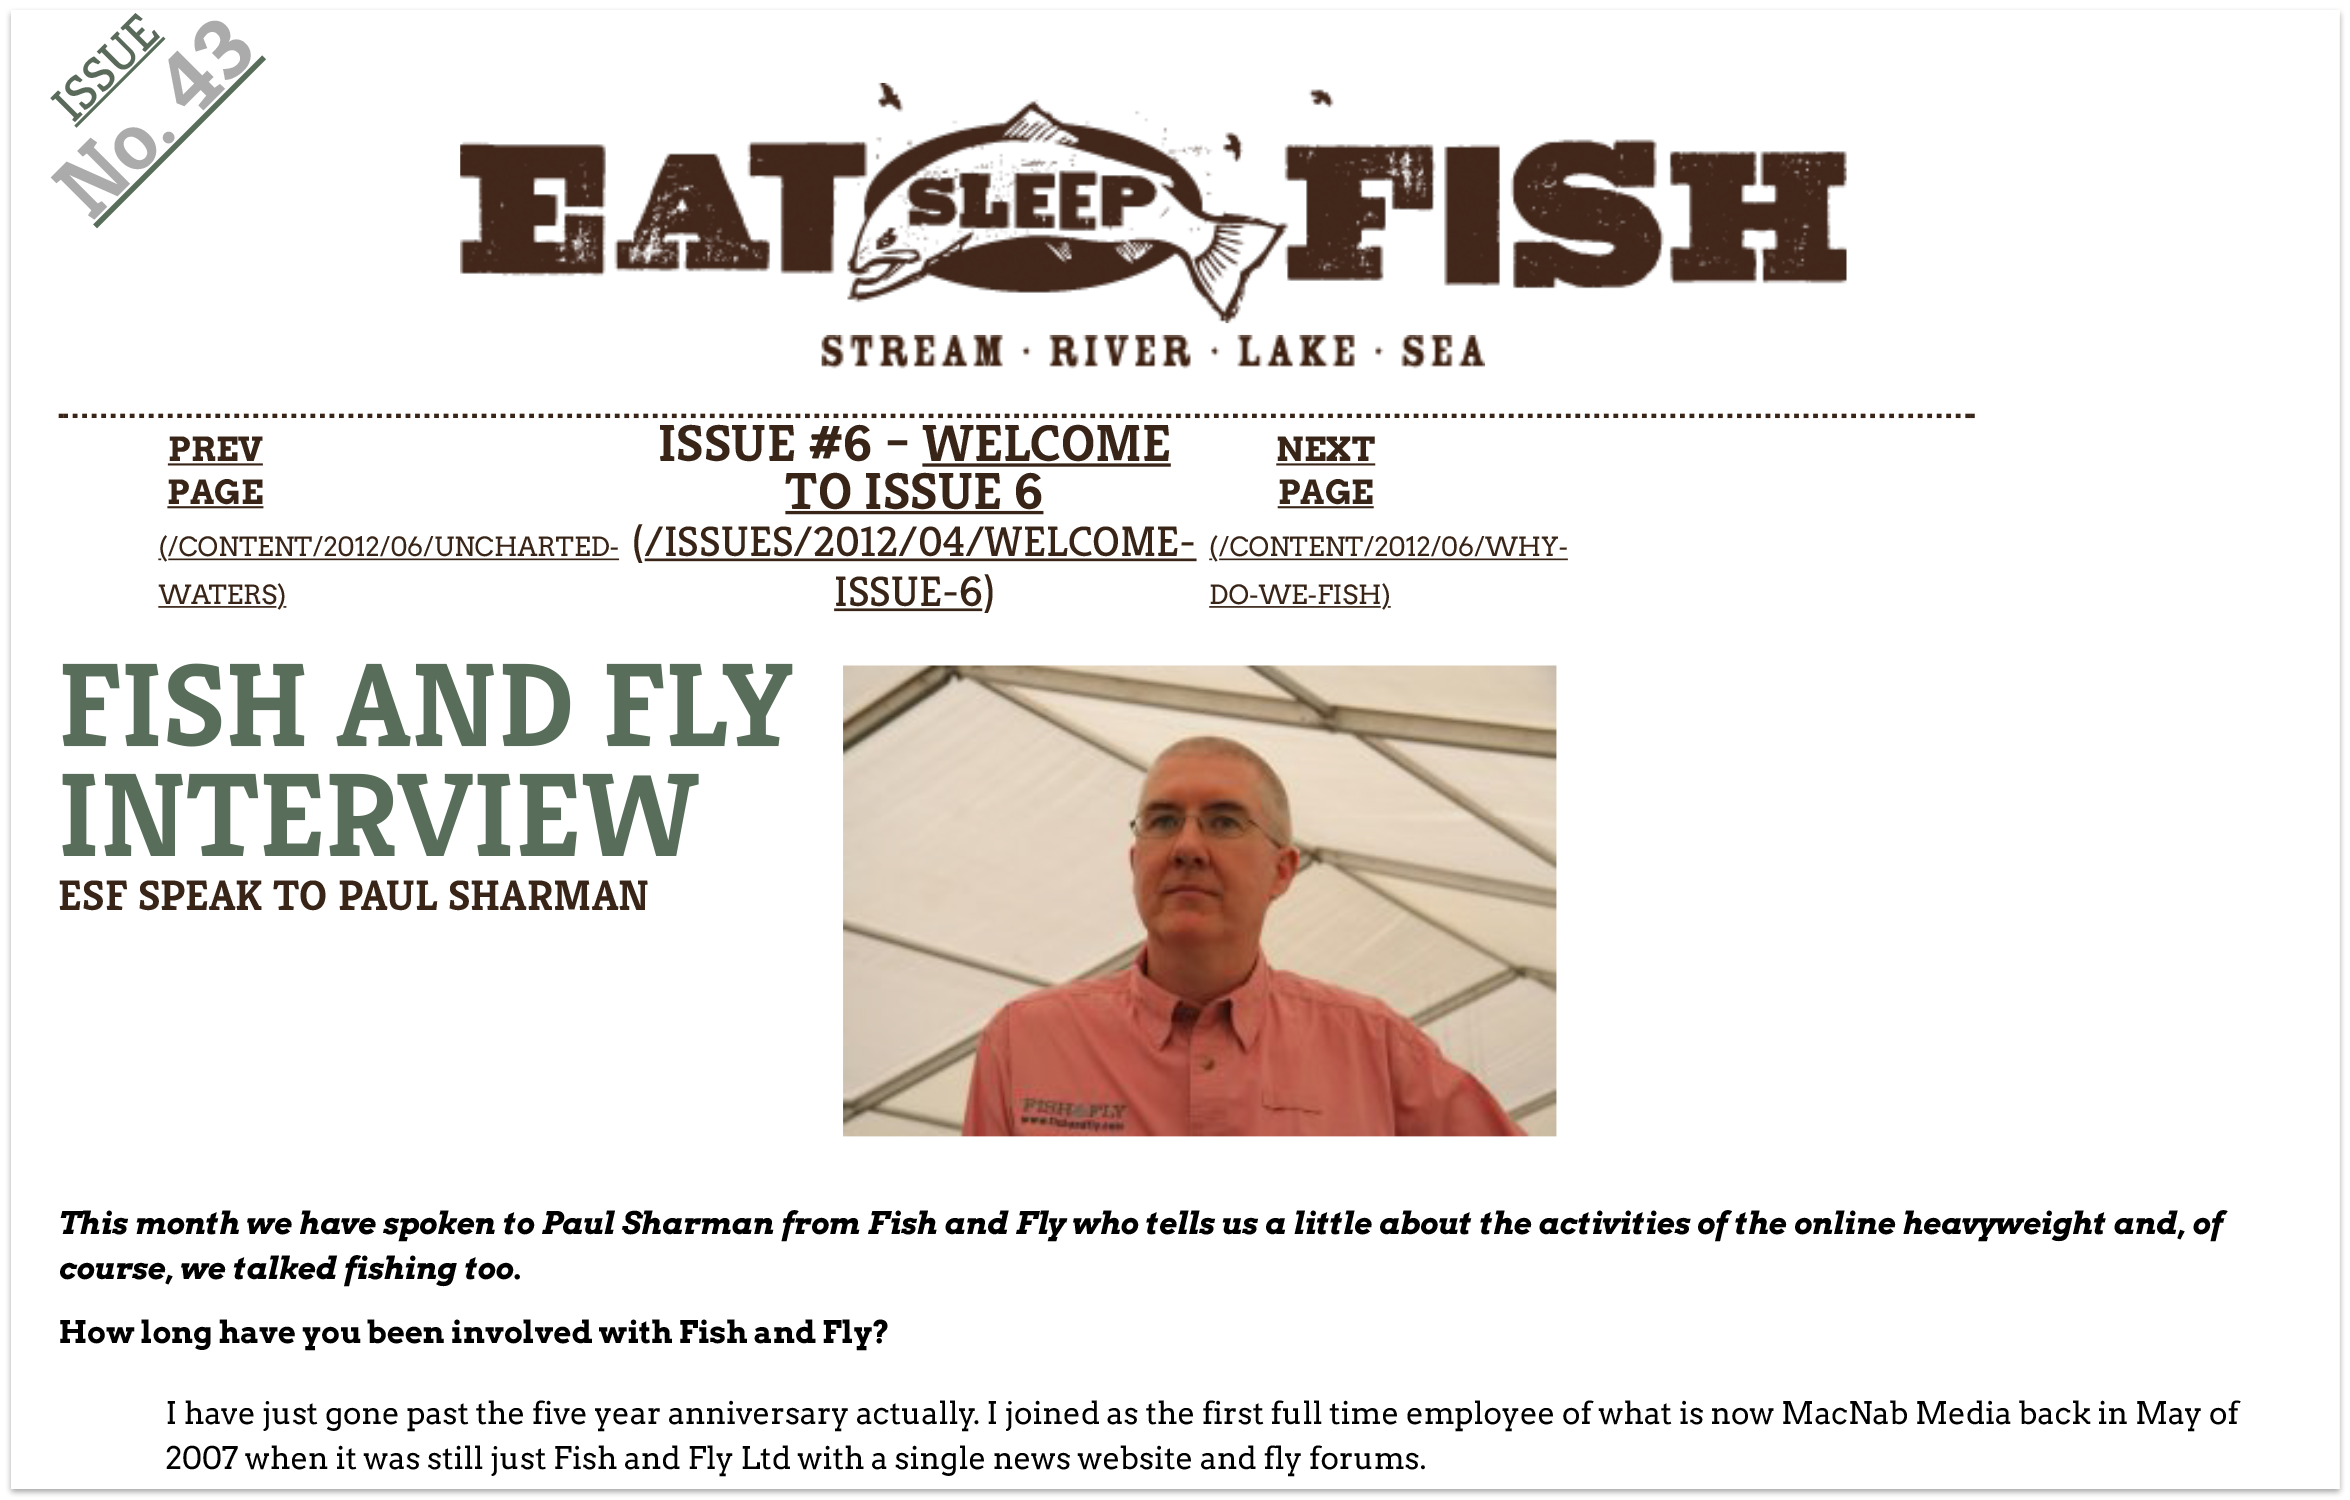 Fish and Fly Interview   Eat, Sleep, Fish-1.png